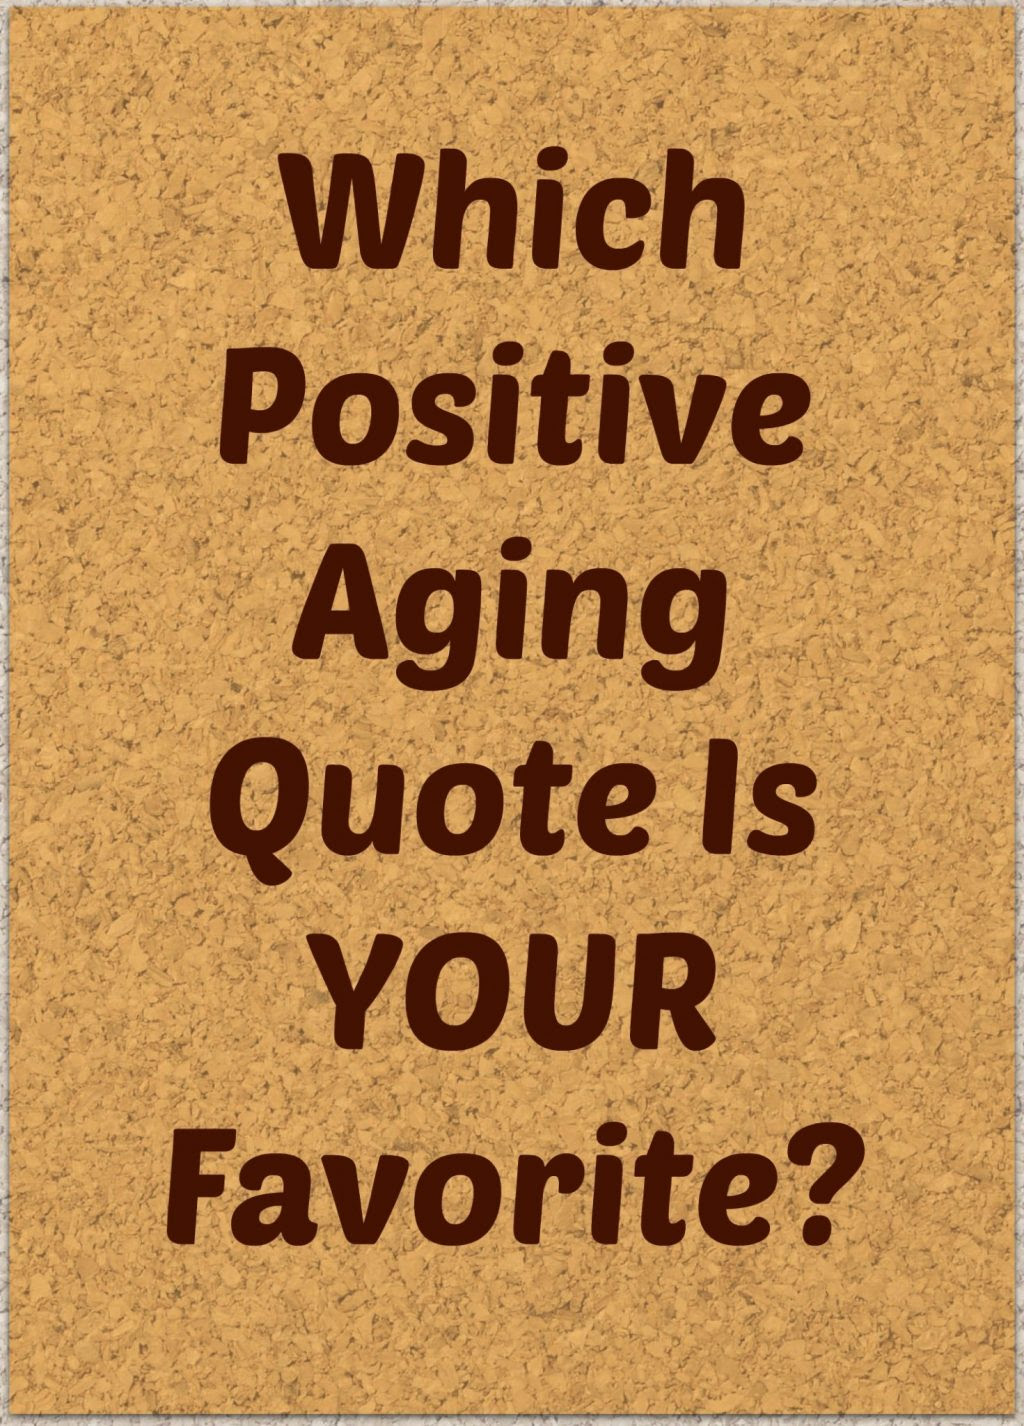 50 Of The Best Positive Aging Quotes I Could Find